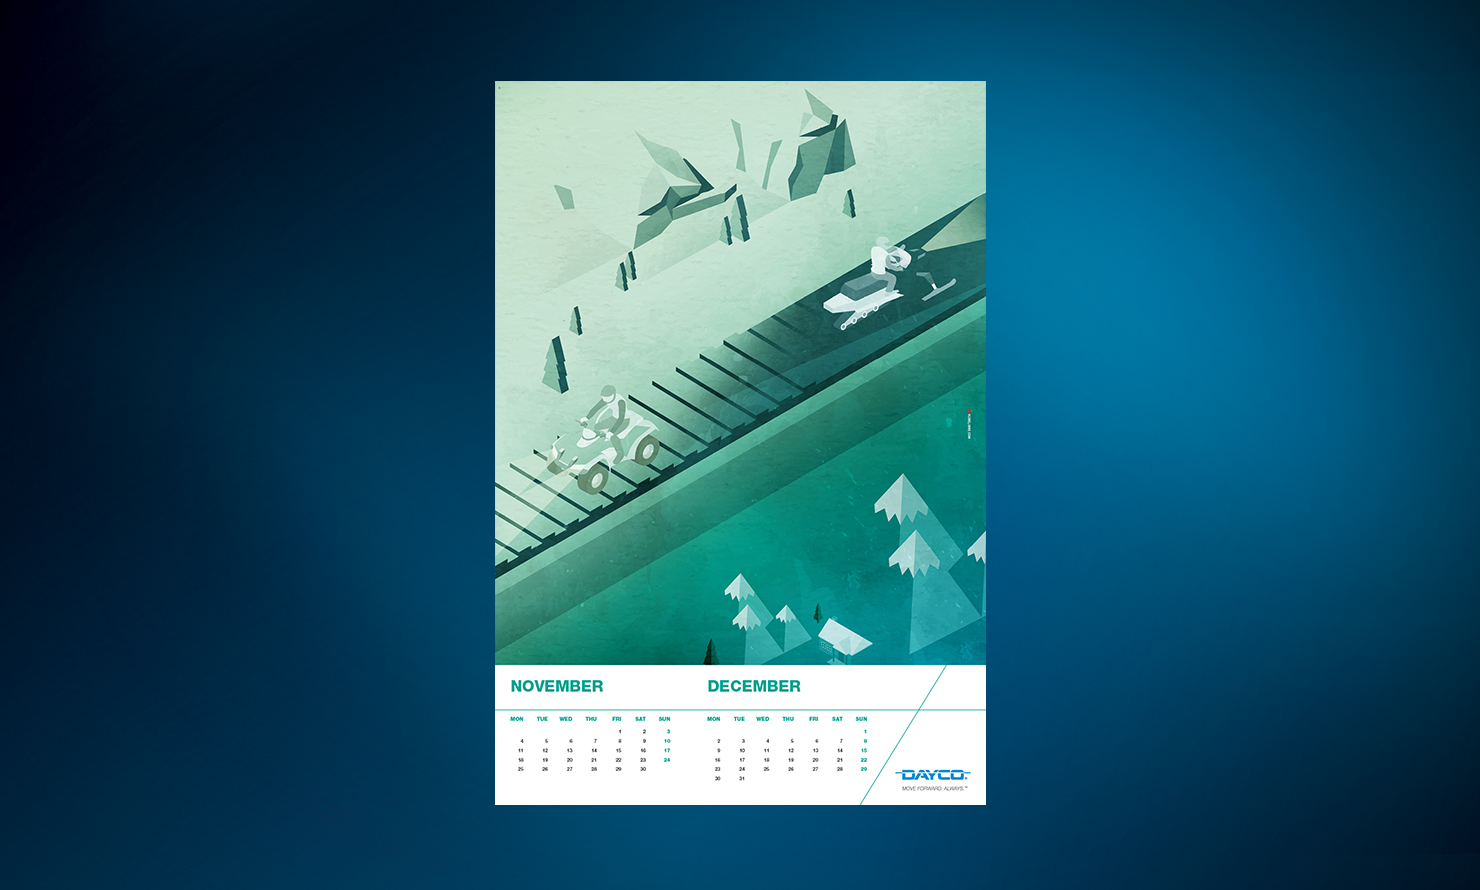 https://kubelibre.com/uploads/Slider-work-tutti-clienti/dayco-calendario-2019-6.jpg